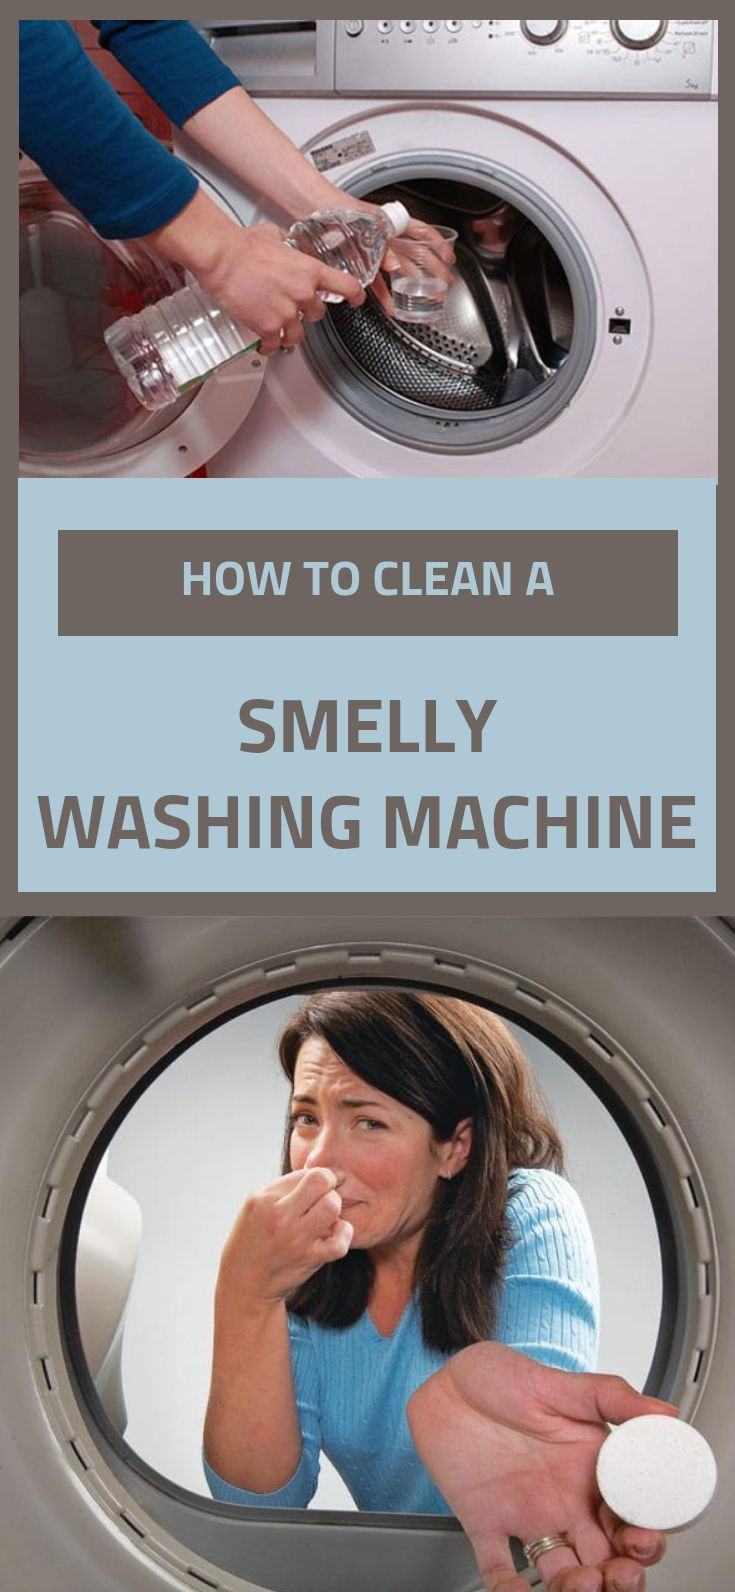 Park Art|My WordPress Blog_How To Get Rid Of Bleach Smell On Clothes